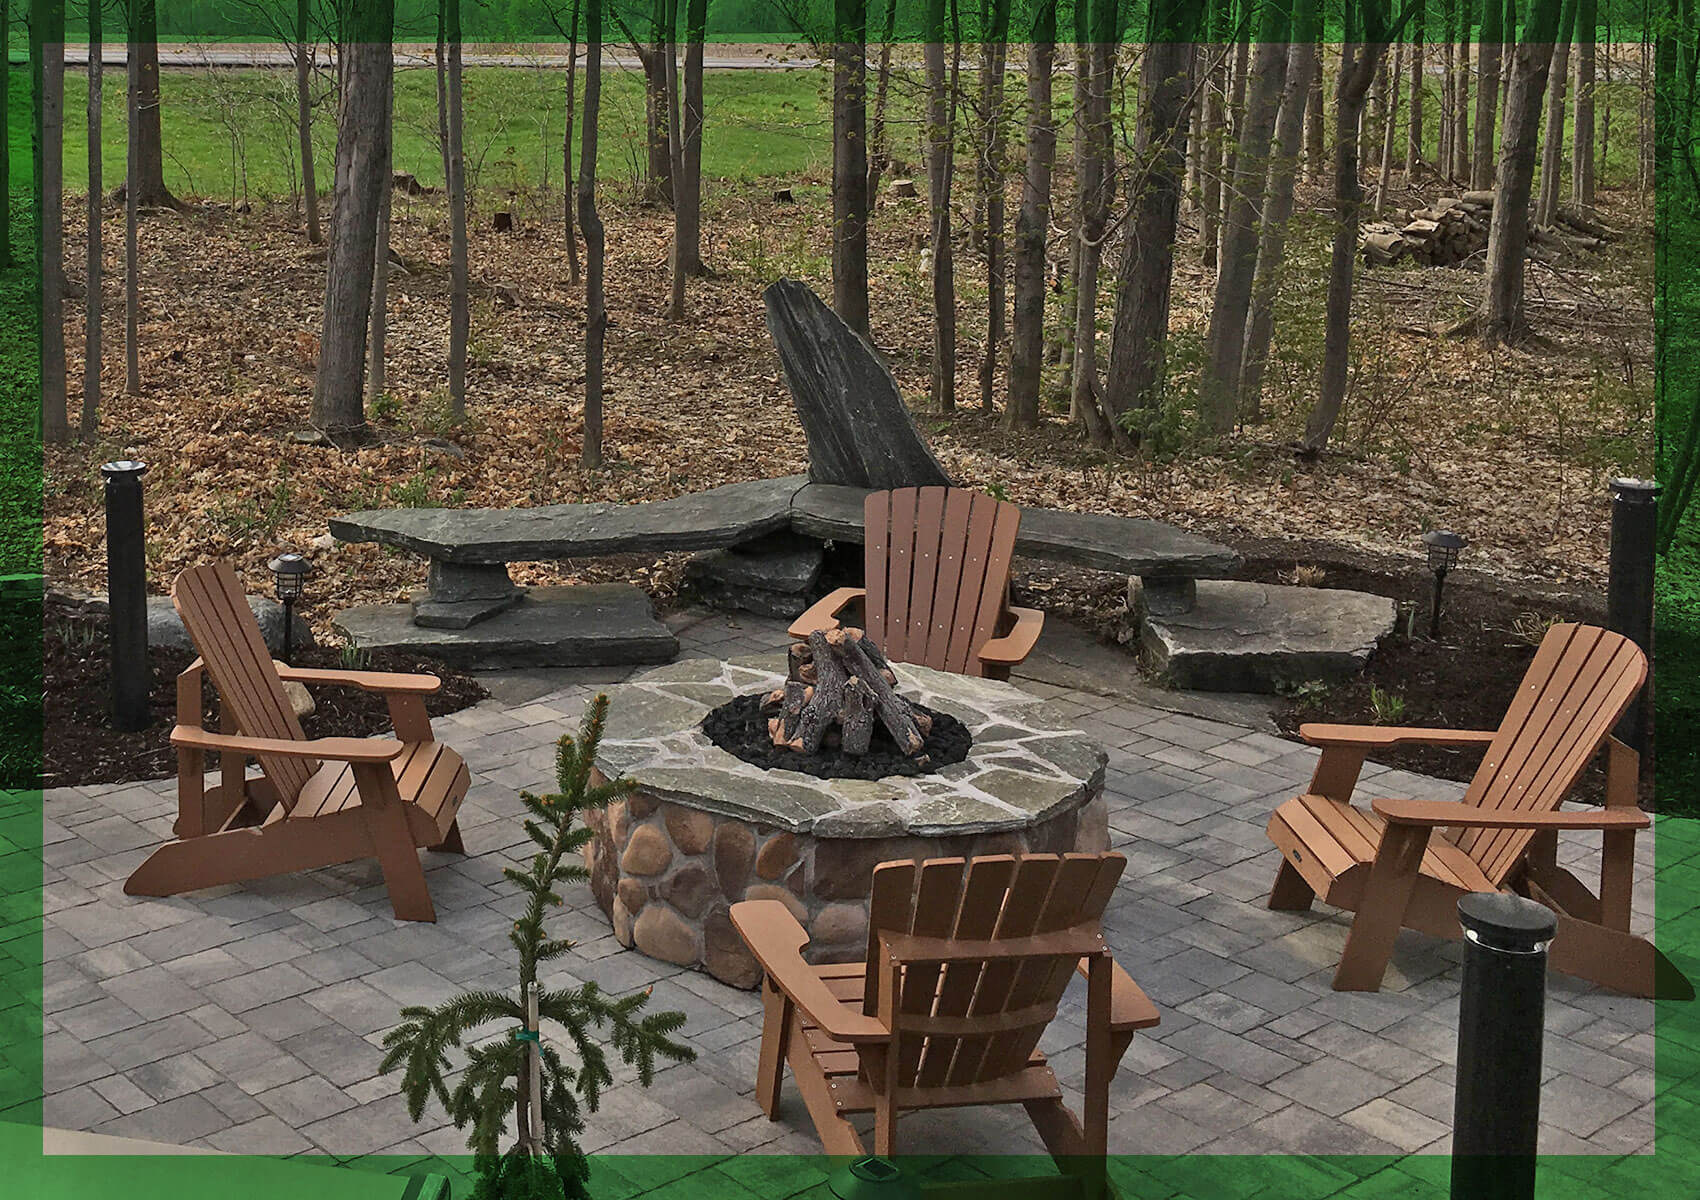 Adirondack chairs around an outdoor fireplace in Central New York